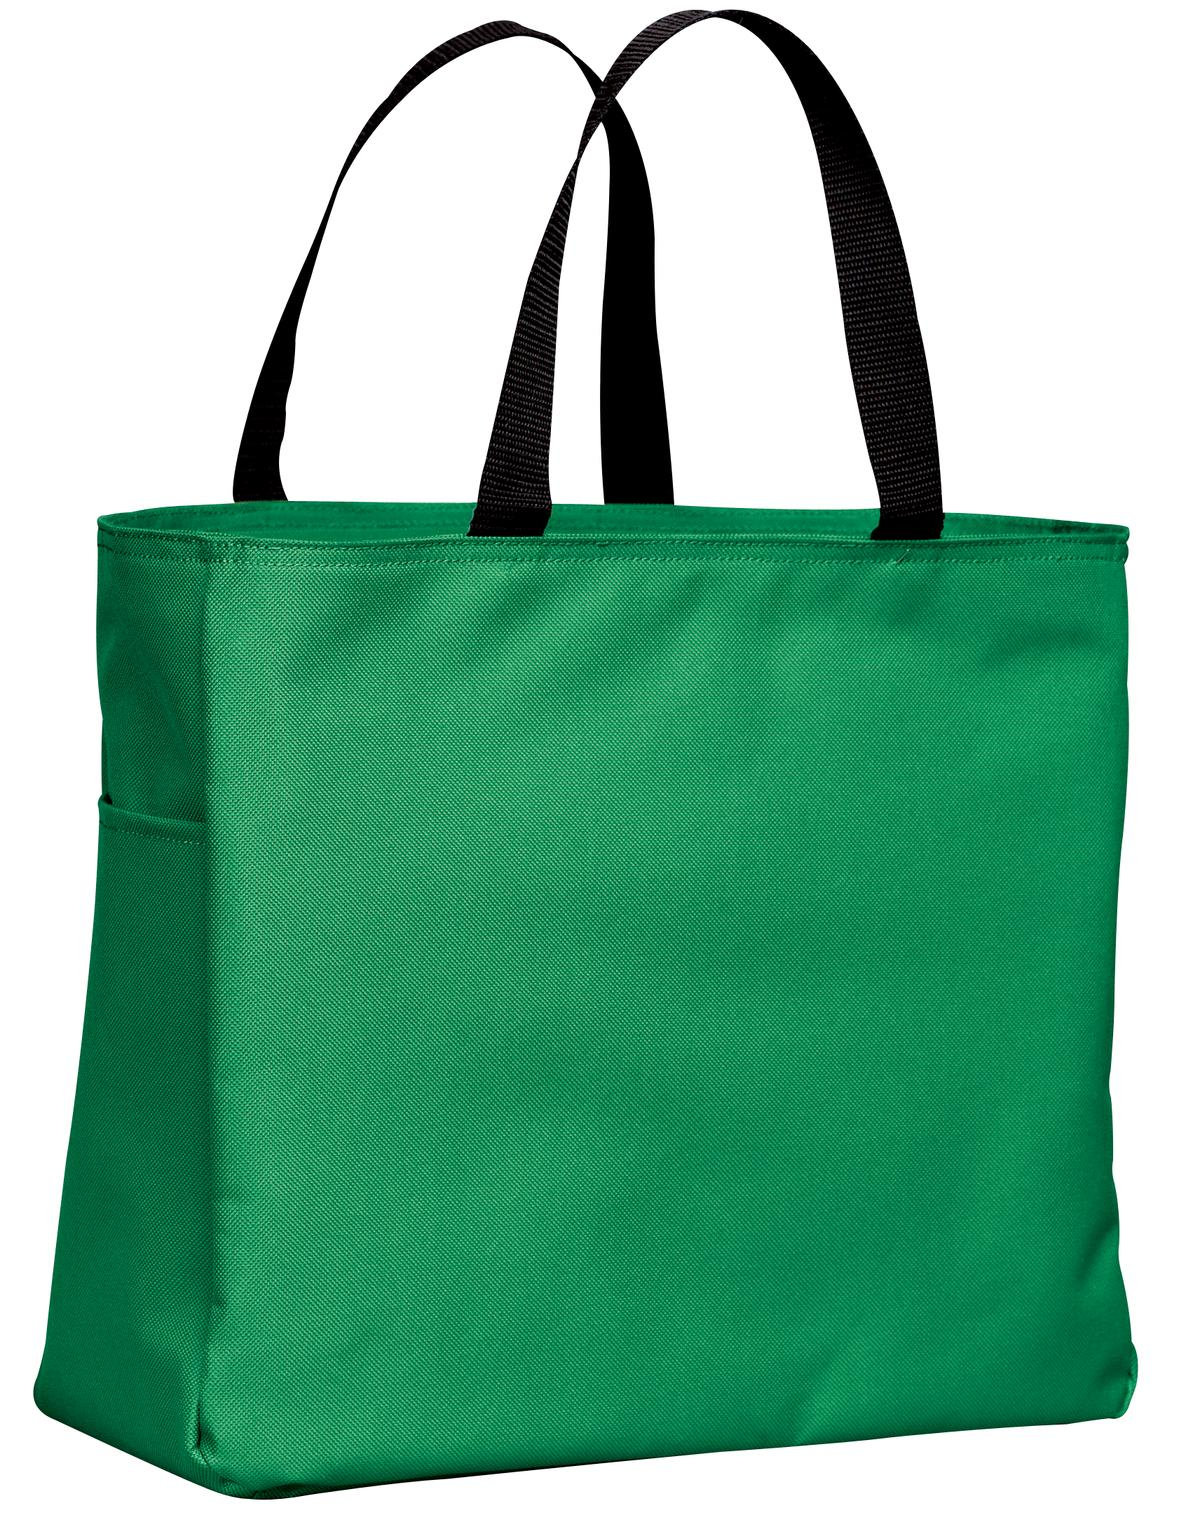 Port Authority ®  -  Essential Tote.  B0750 - Kelly Green